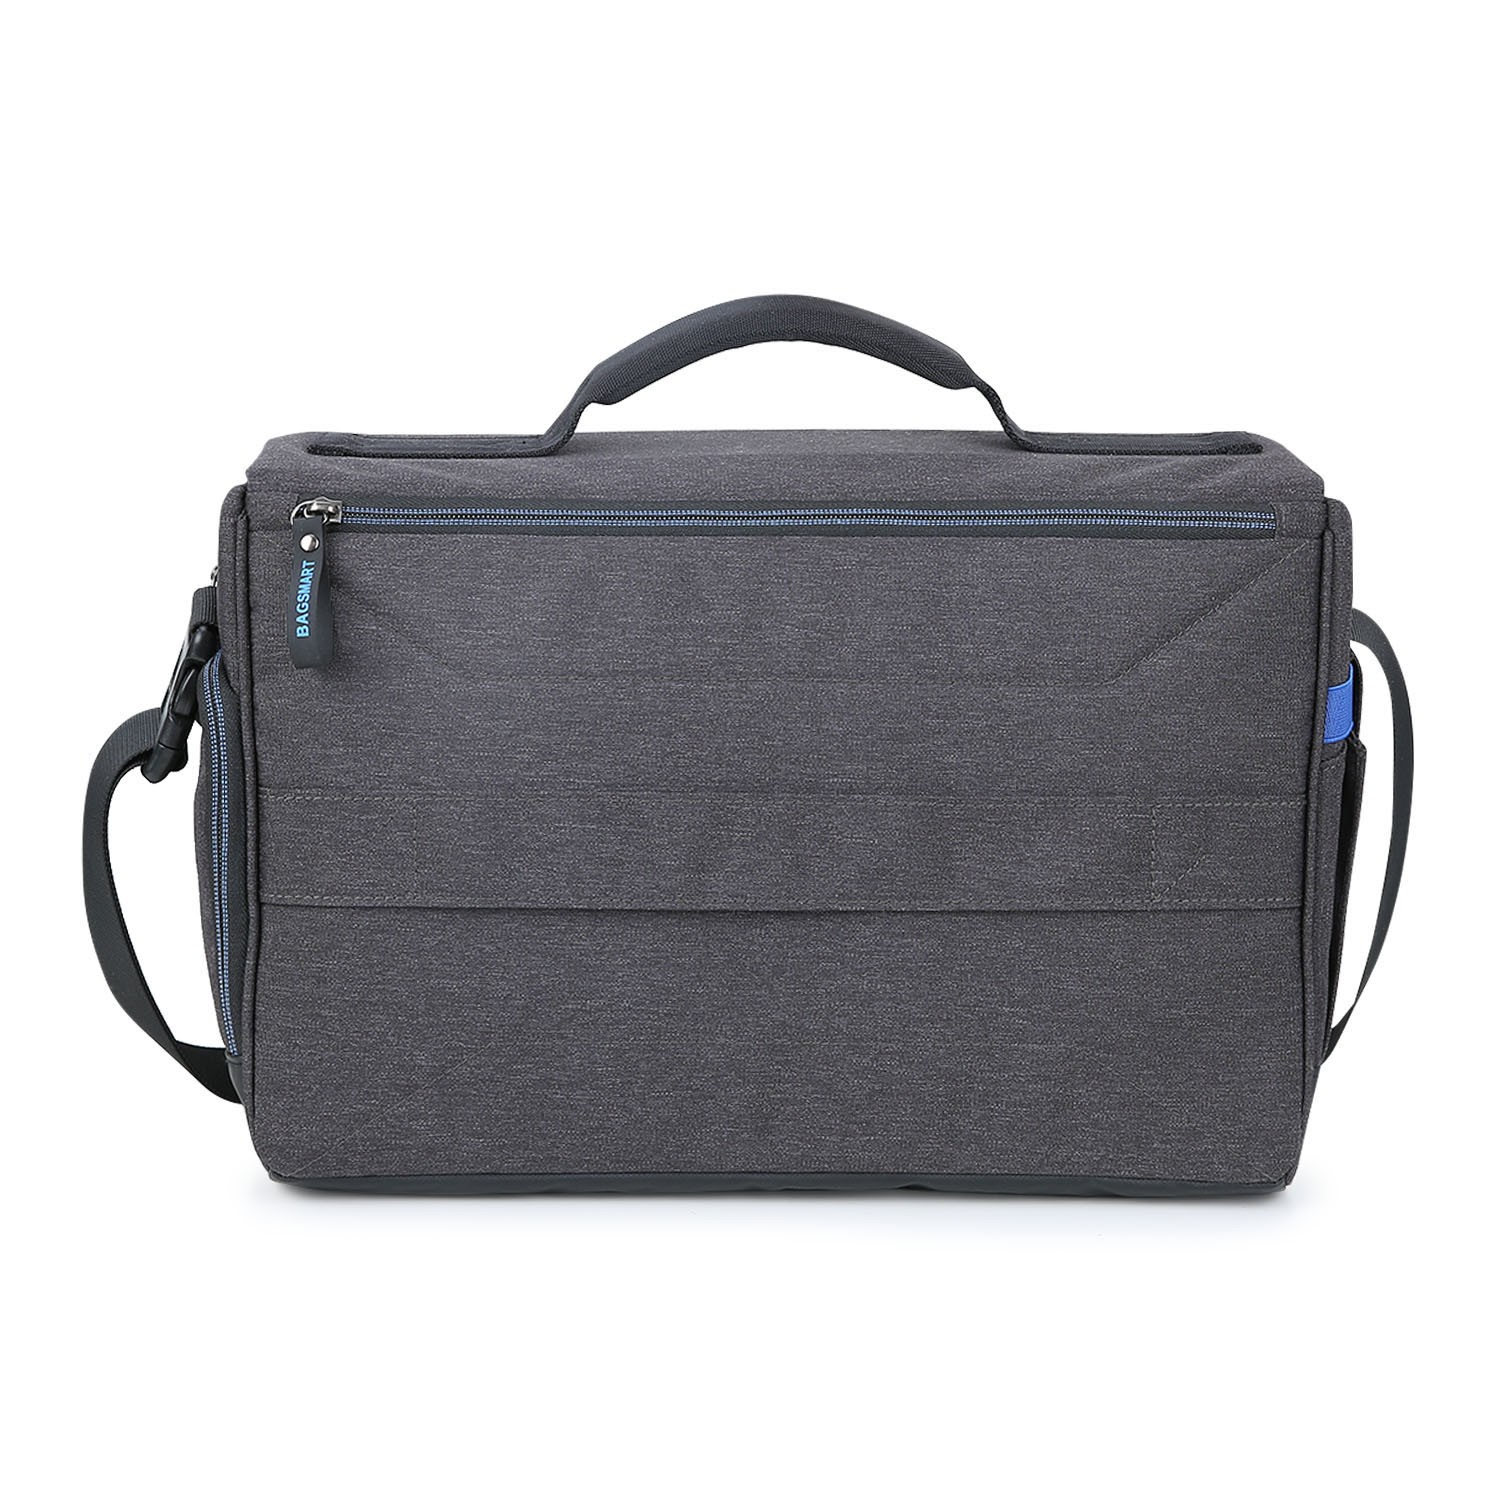 Drone Backpacks Manufacturers, Drone Backpacks Factory, Supply Drone Backpacks